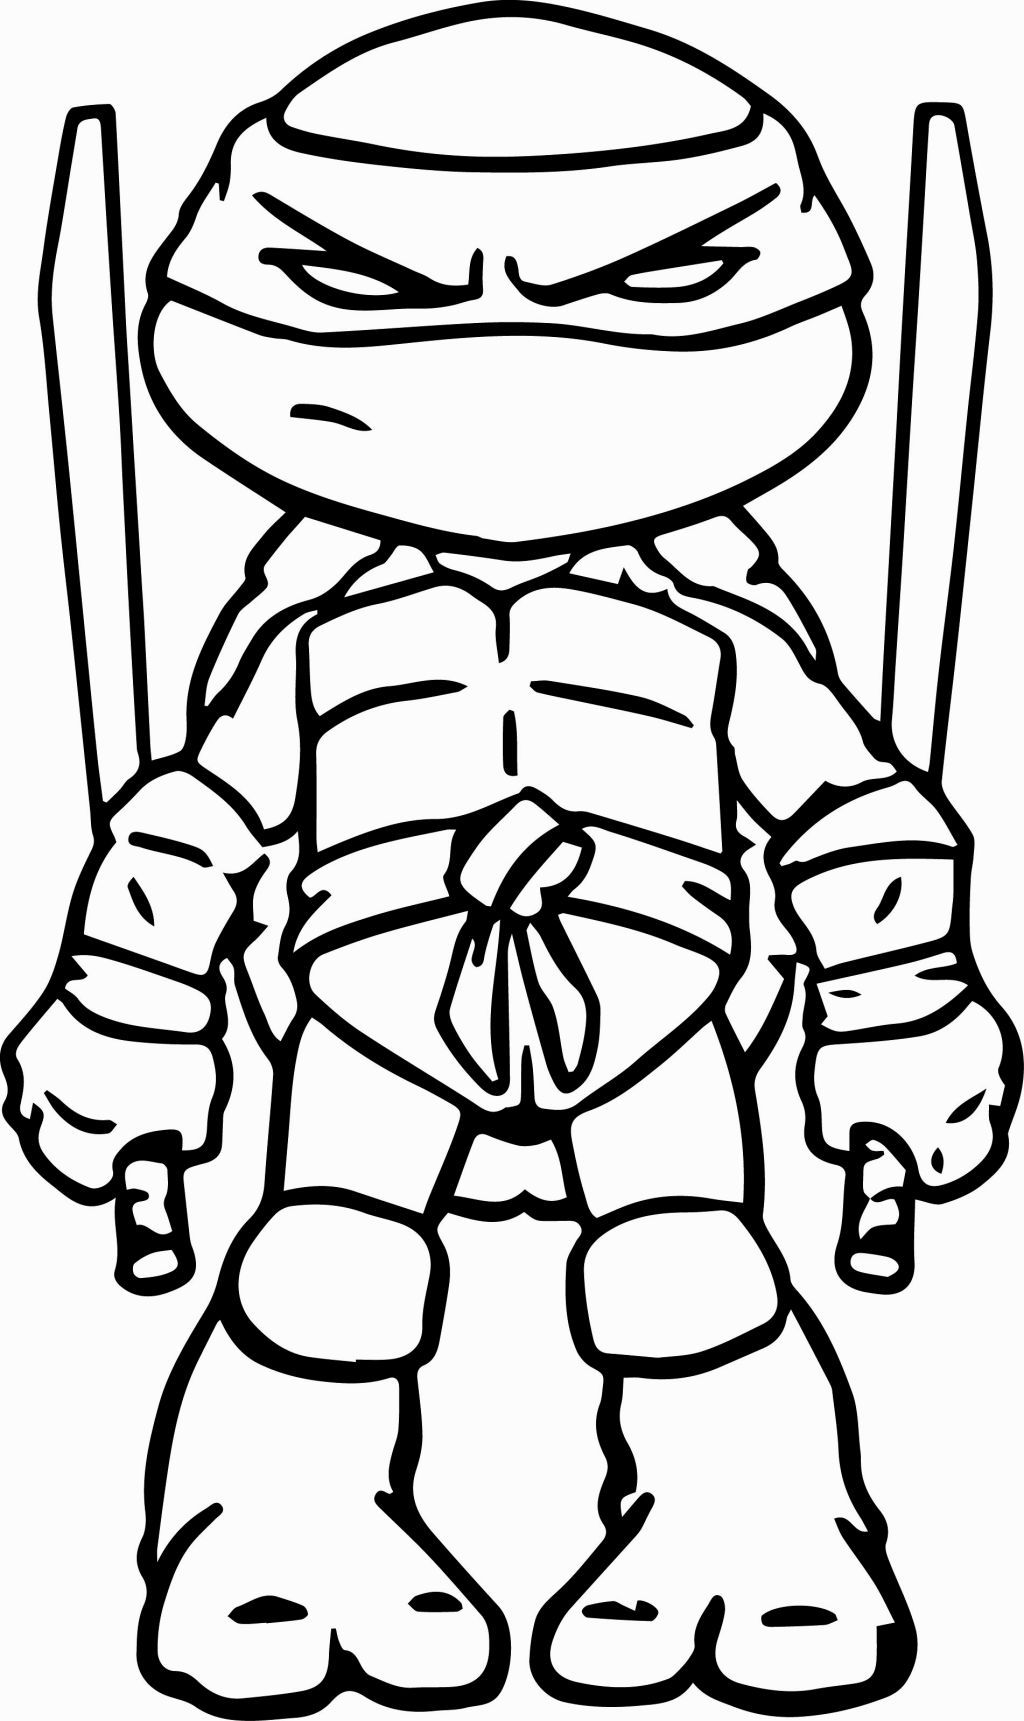 Ninja Turtle Coloring Pages | Cut Outs & Fonts | Pinterest | Bilder